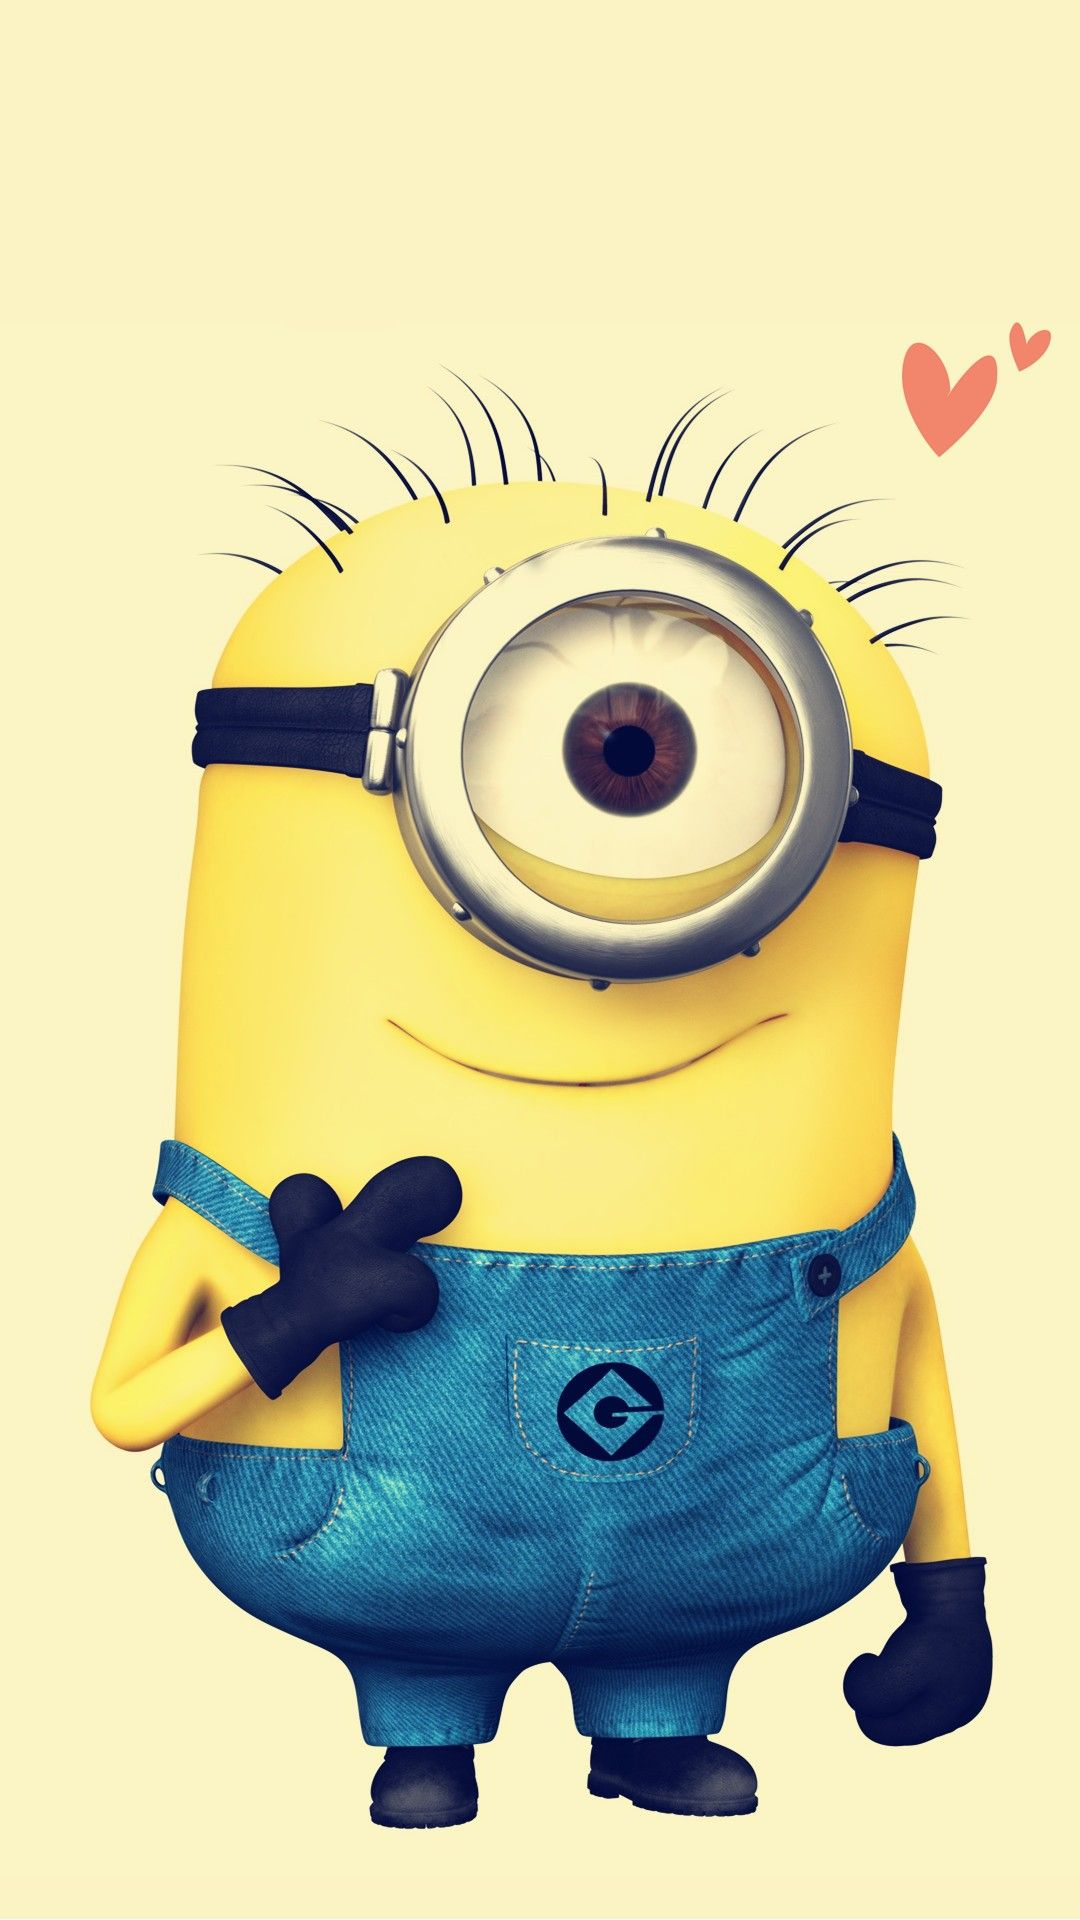 HD Minions Wallpapers For S4 Http Backgroundwallpapersco Hd